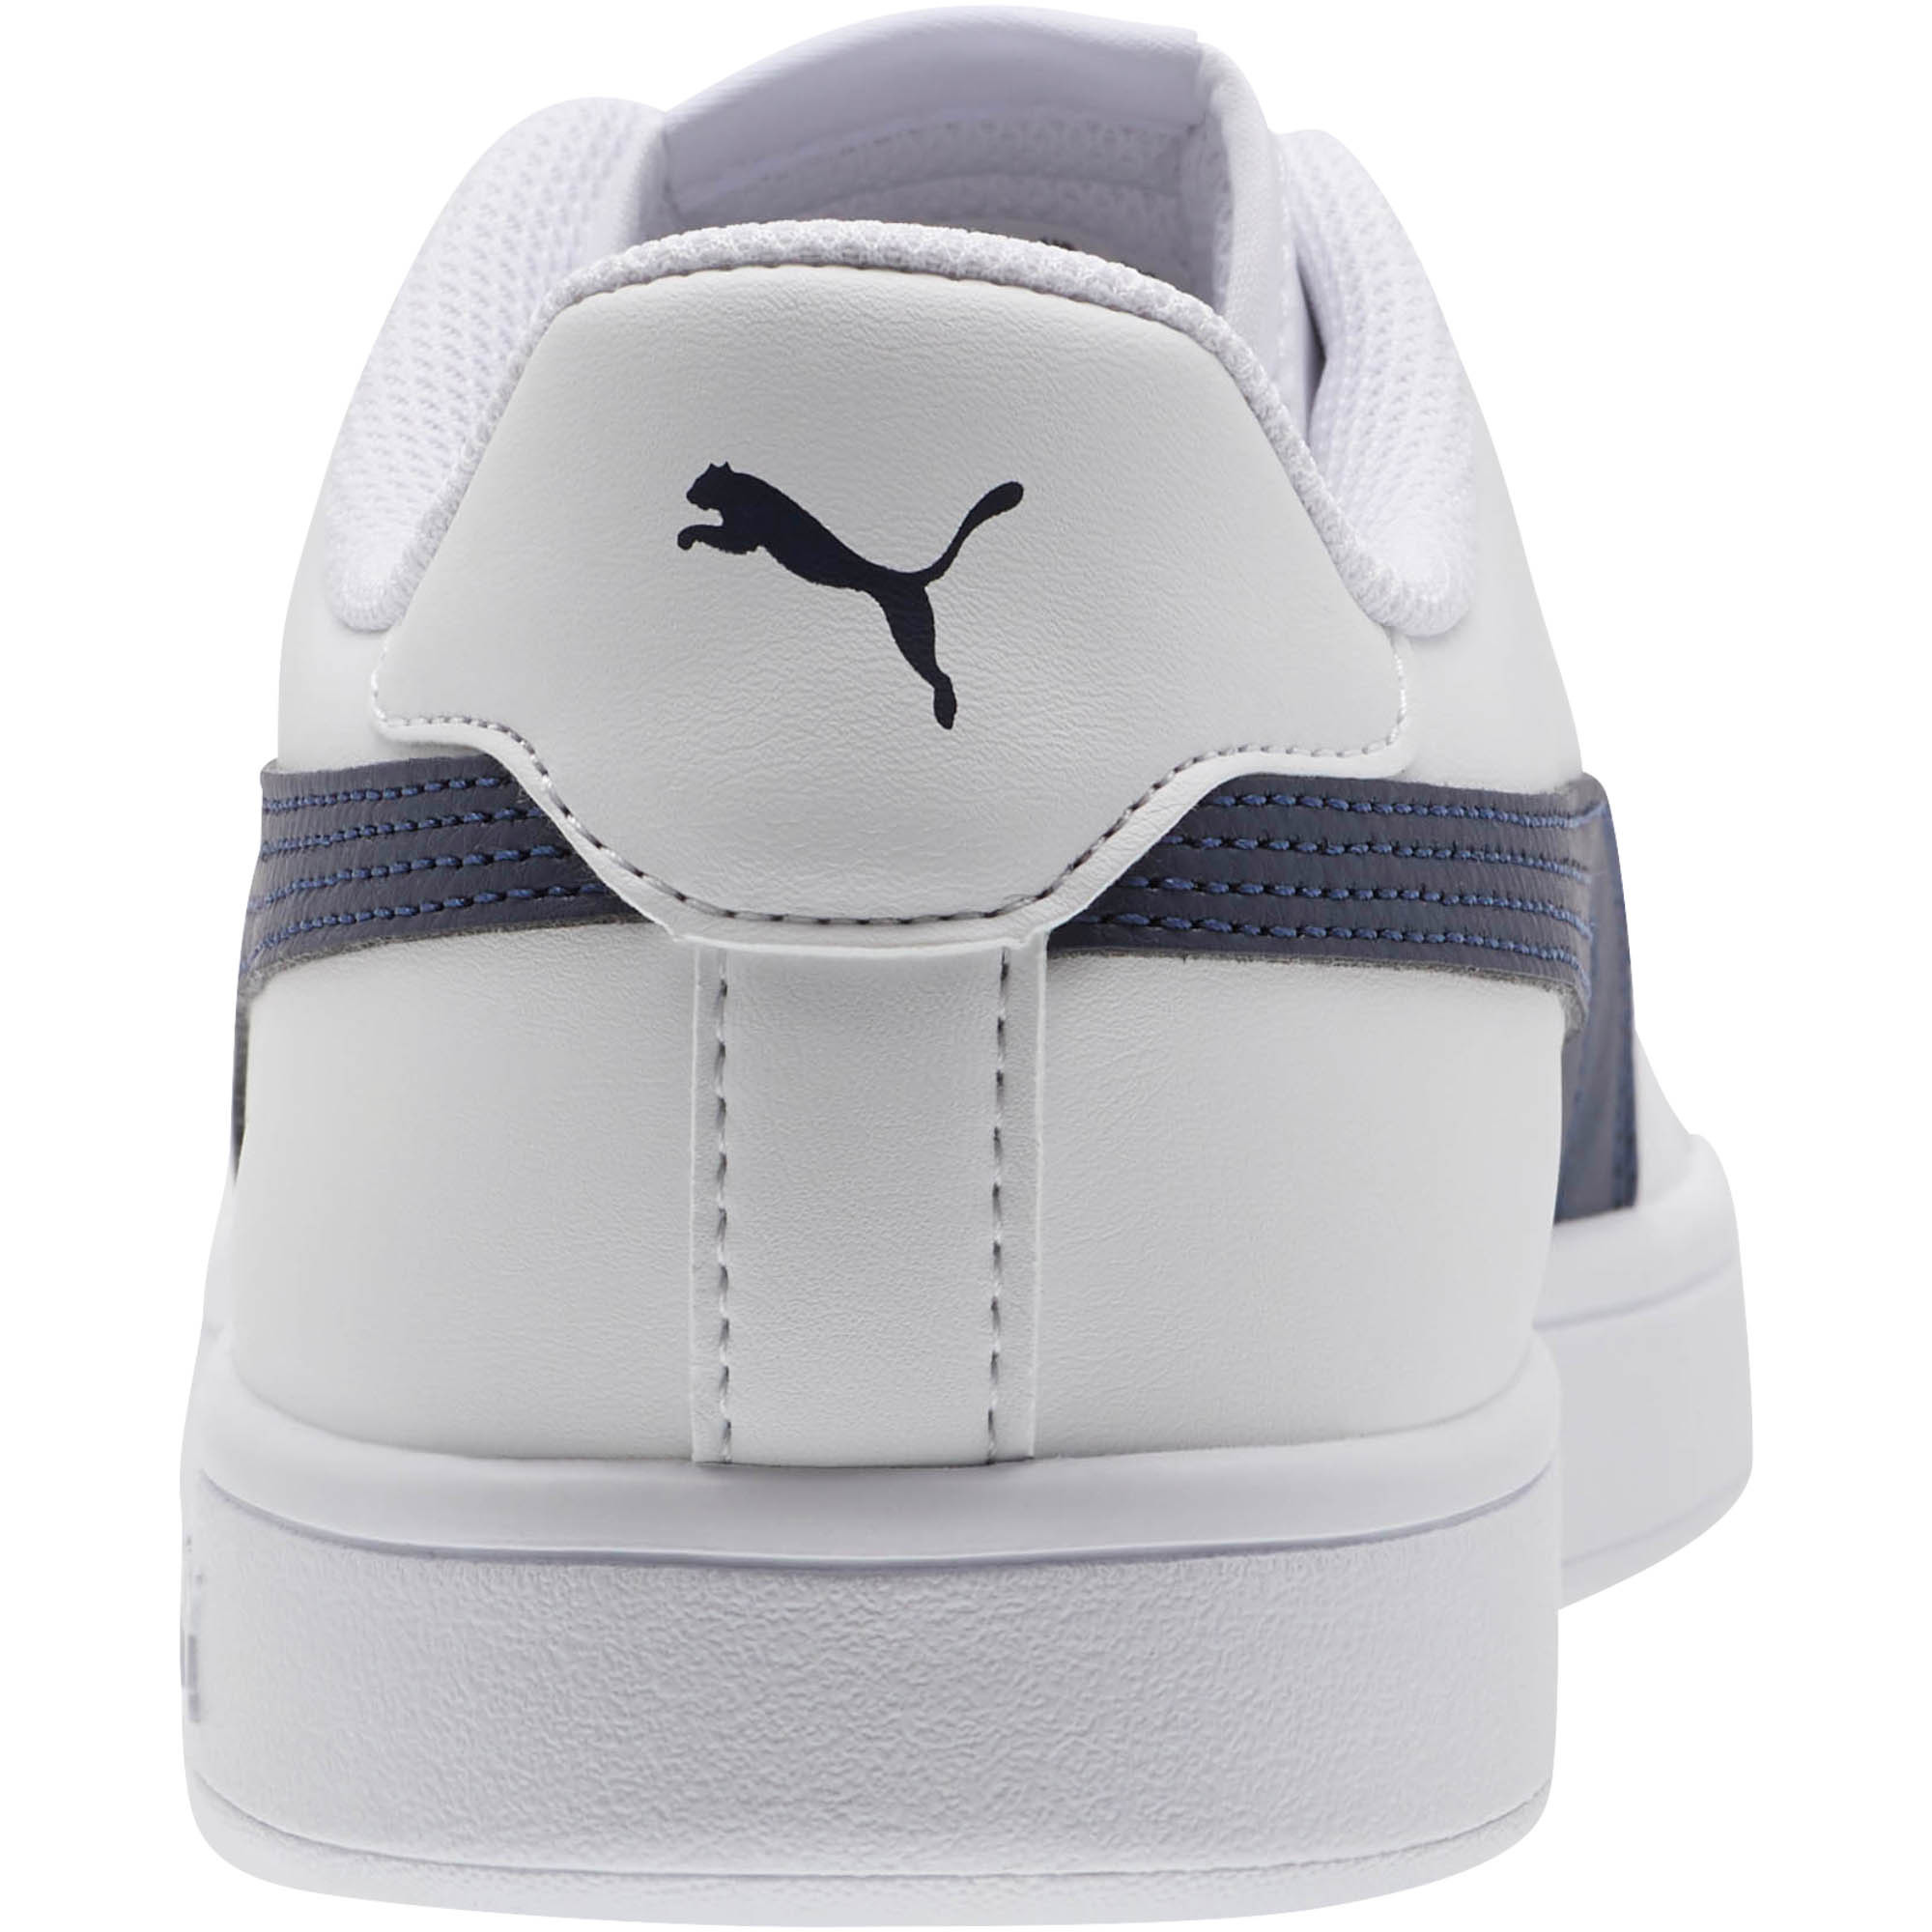 PUMA-PUMA-Smash-v2-Men-039-s-Sneakers-Men-Shoe-Basics miniatura 13